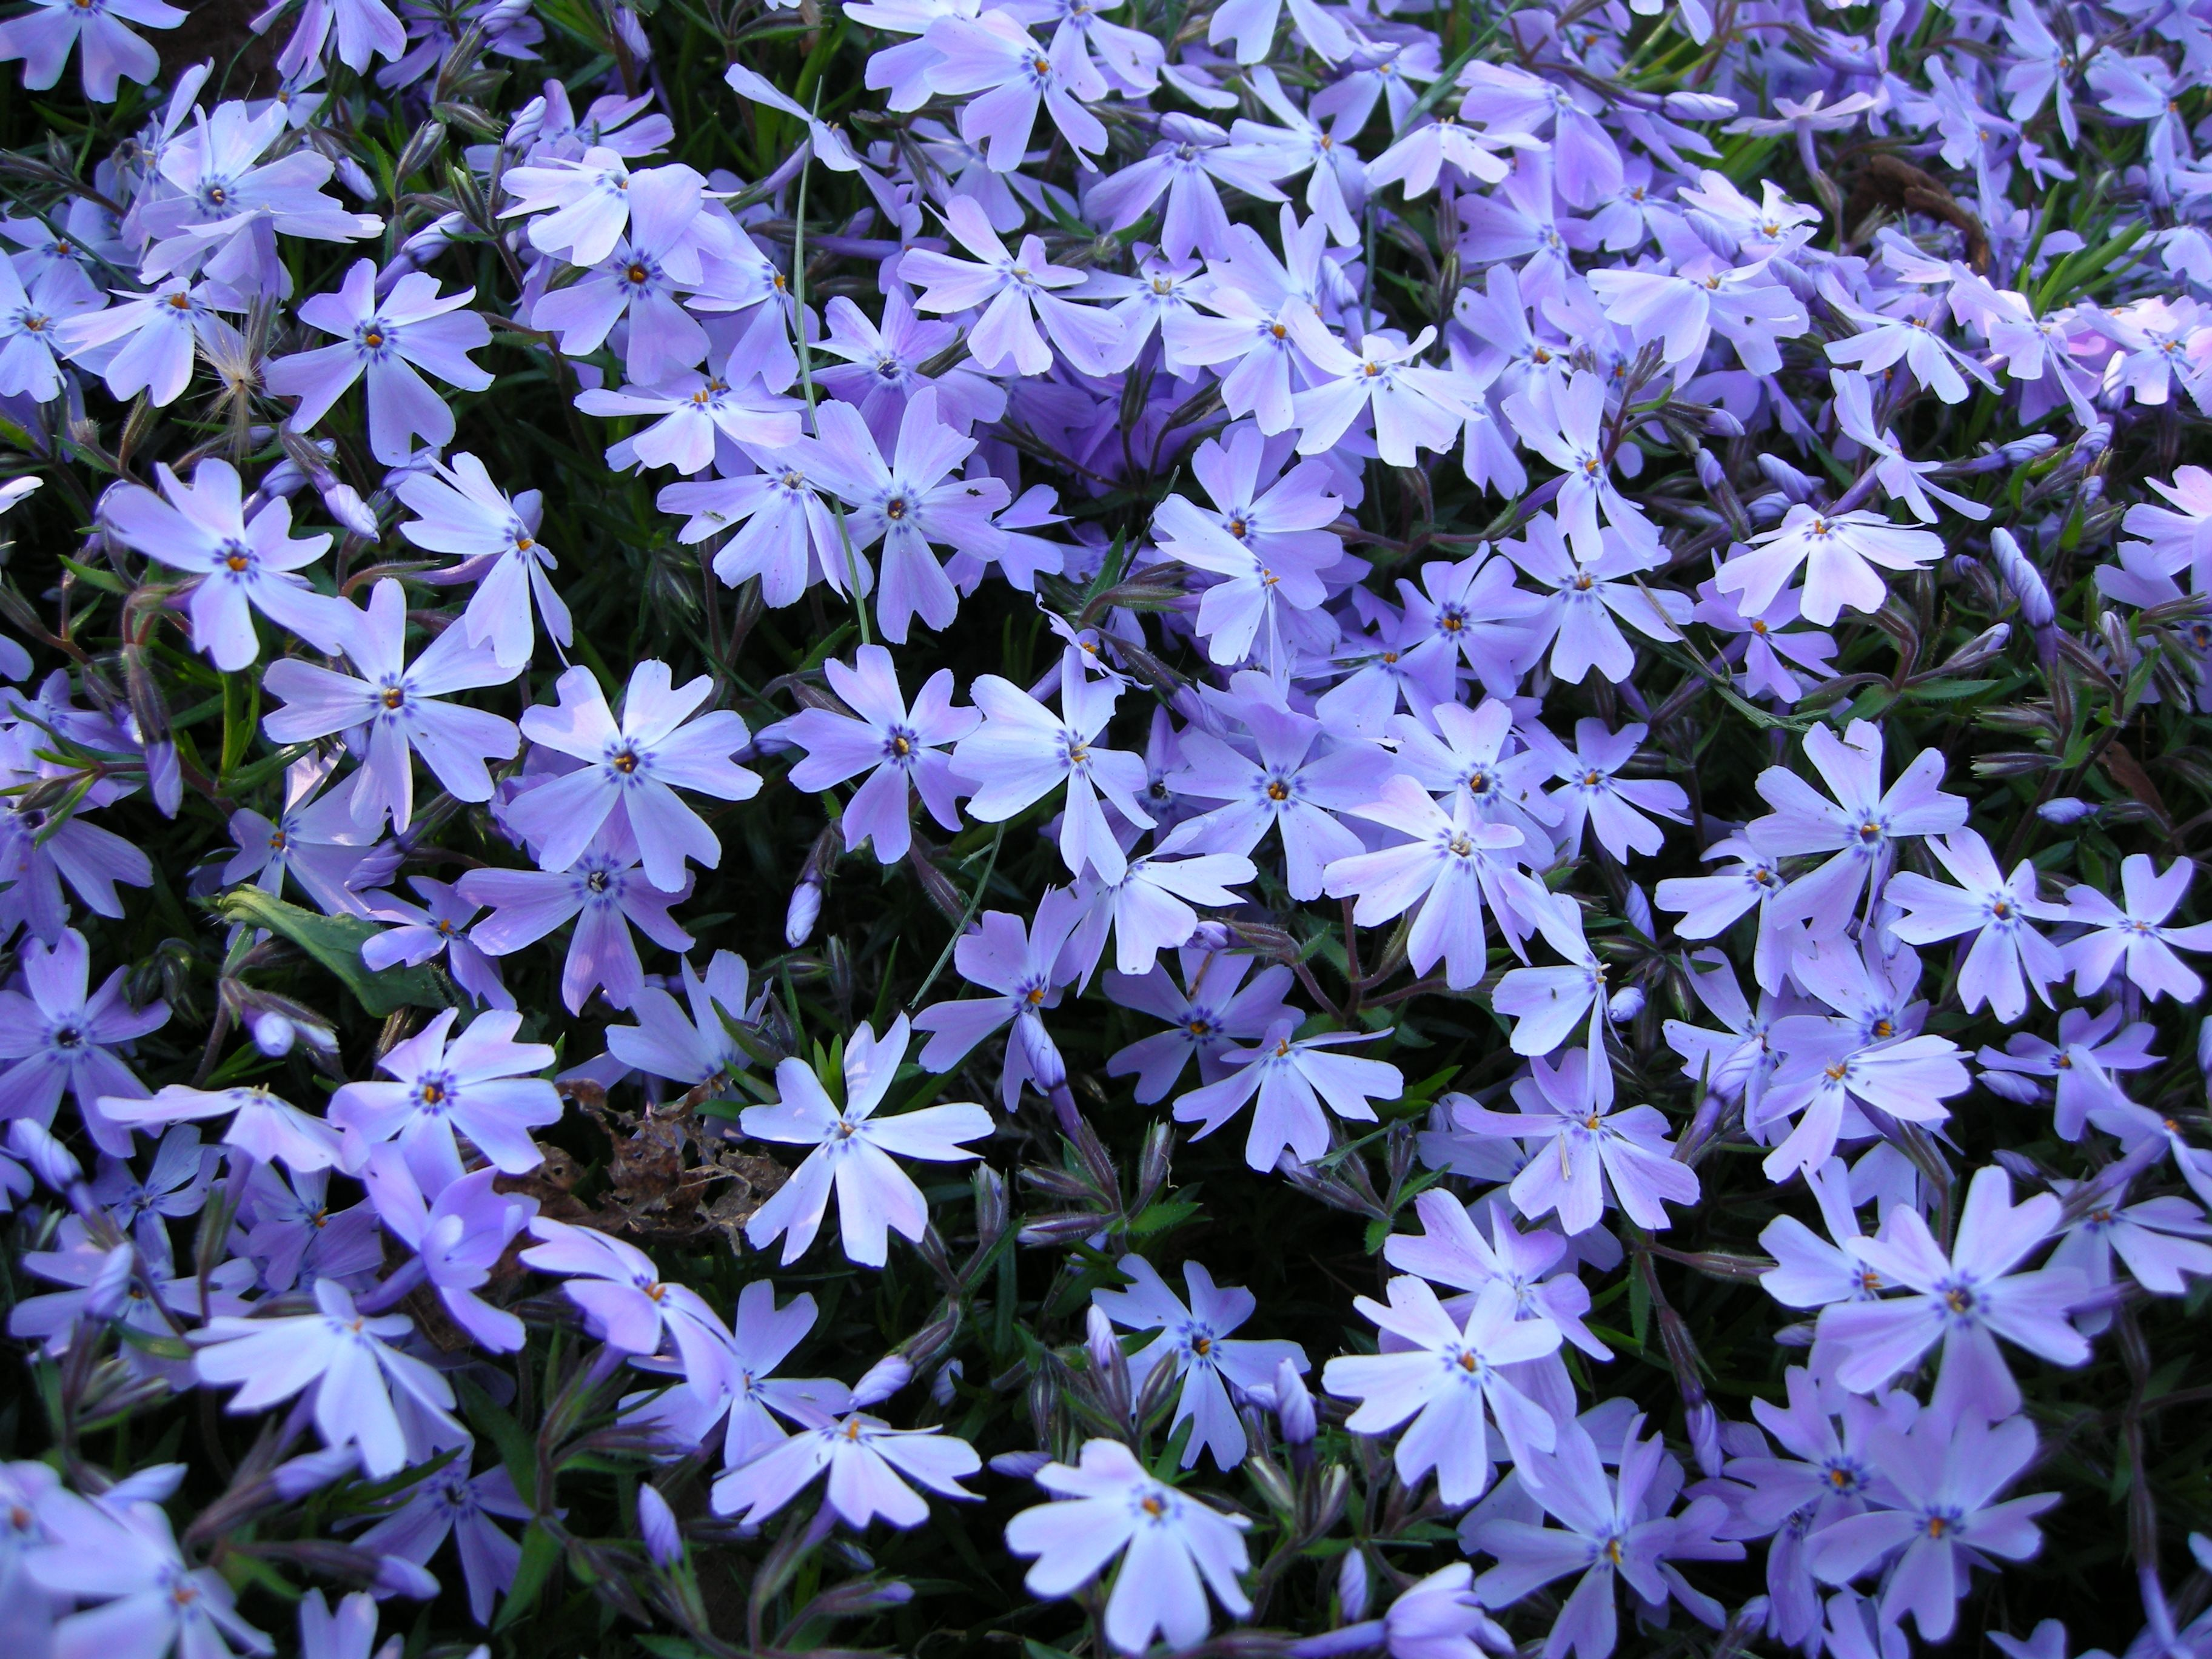 Emerald blue phlox i wish i had planted more of this last year it blue creeping phlox phlox subulata emerald blue this is what my daughter in law megan welsh is planting in her yard she received this plant by mail on izmirmasajfo Images